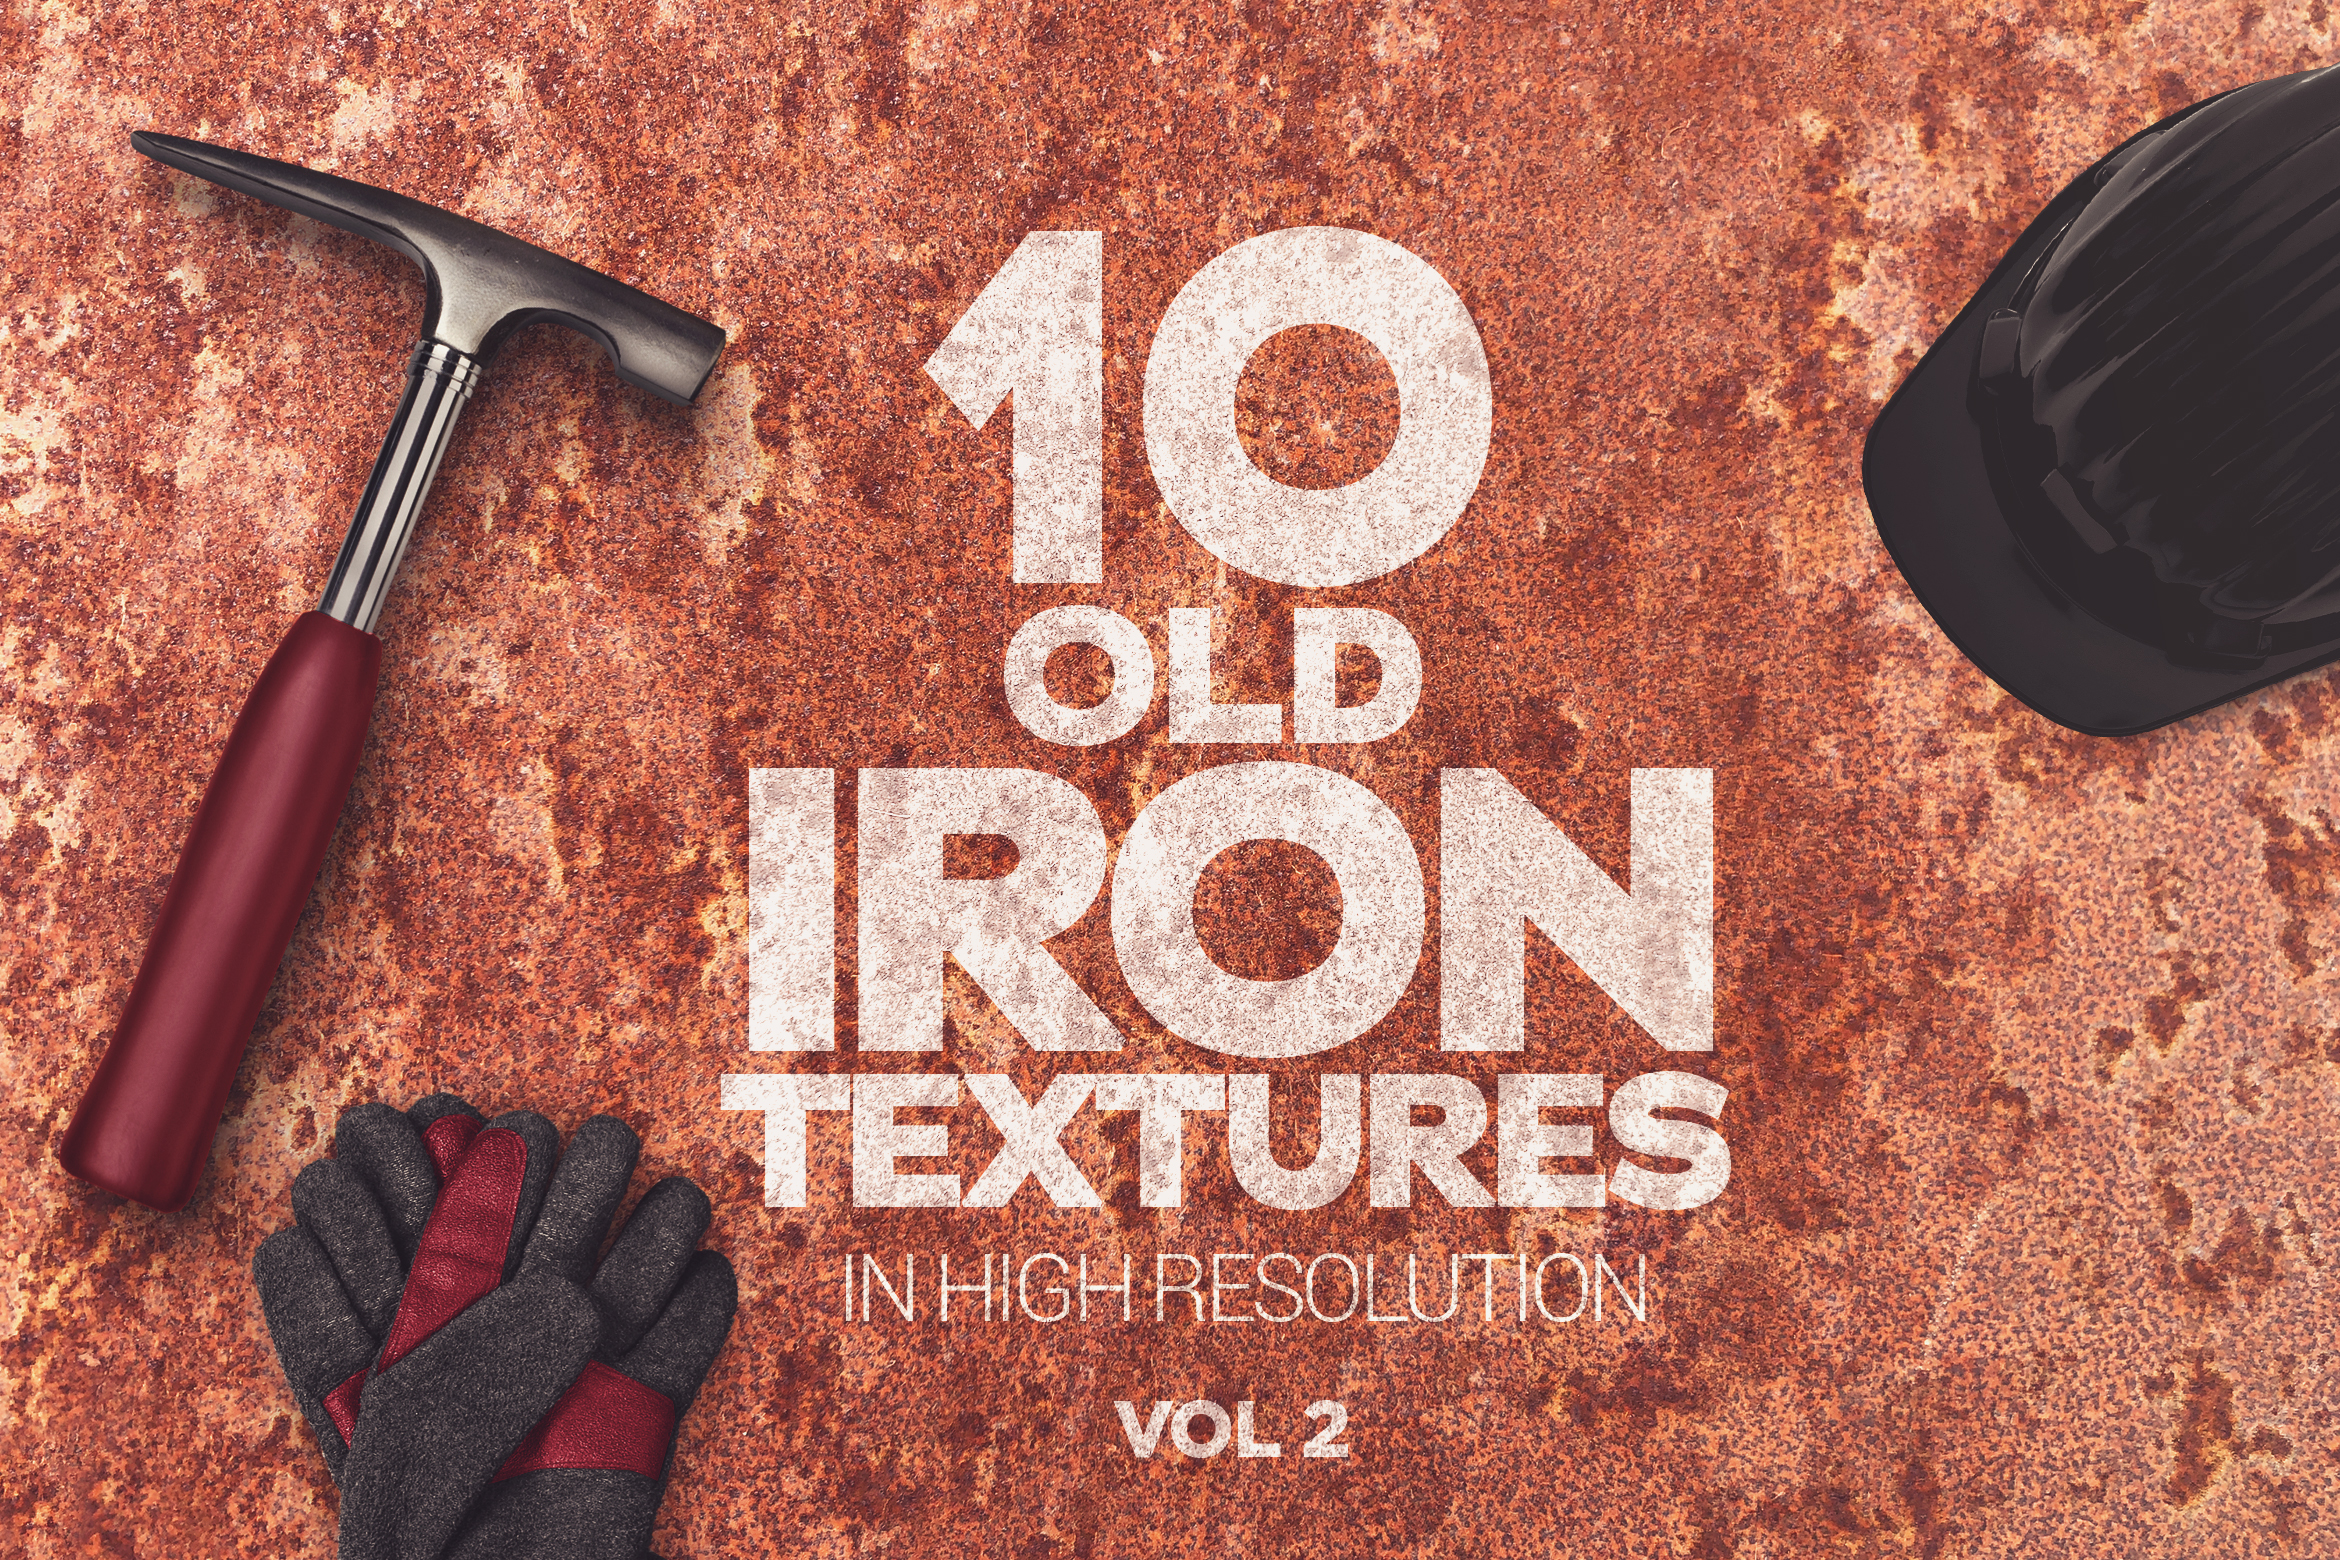 Old Iron Textures x10 Vol 2